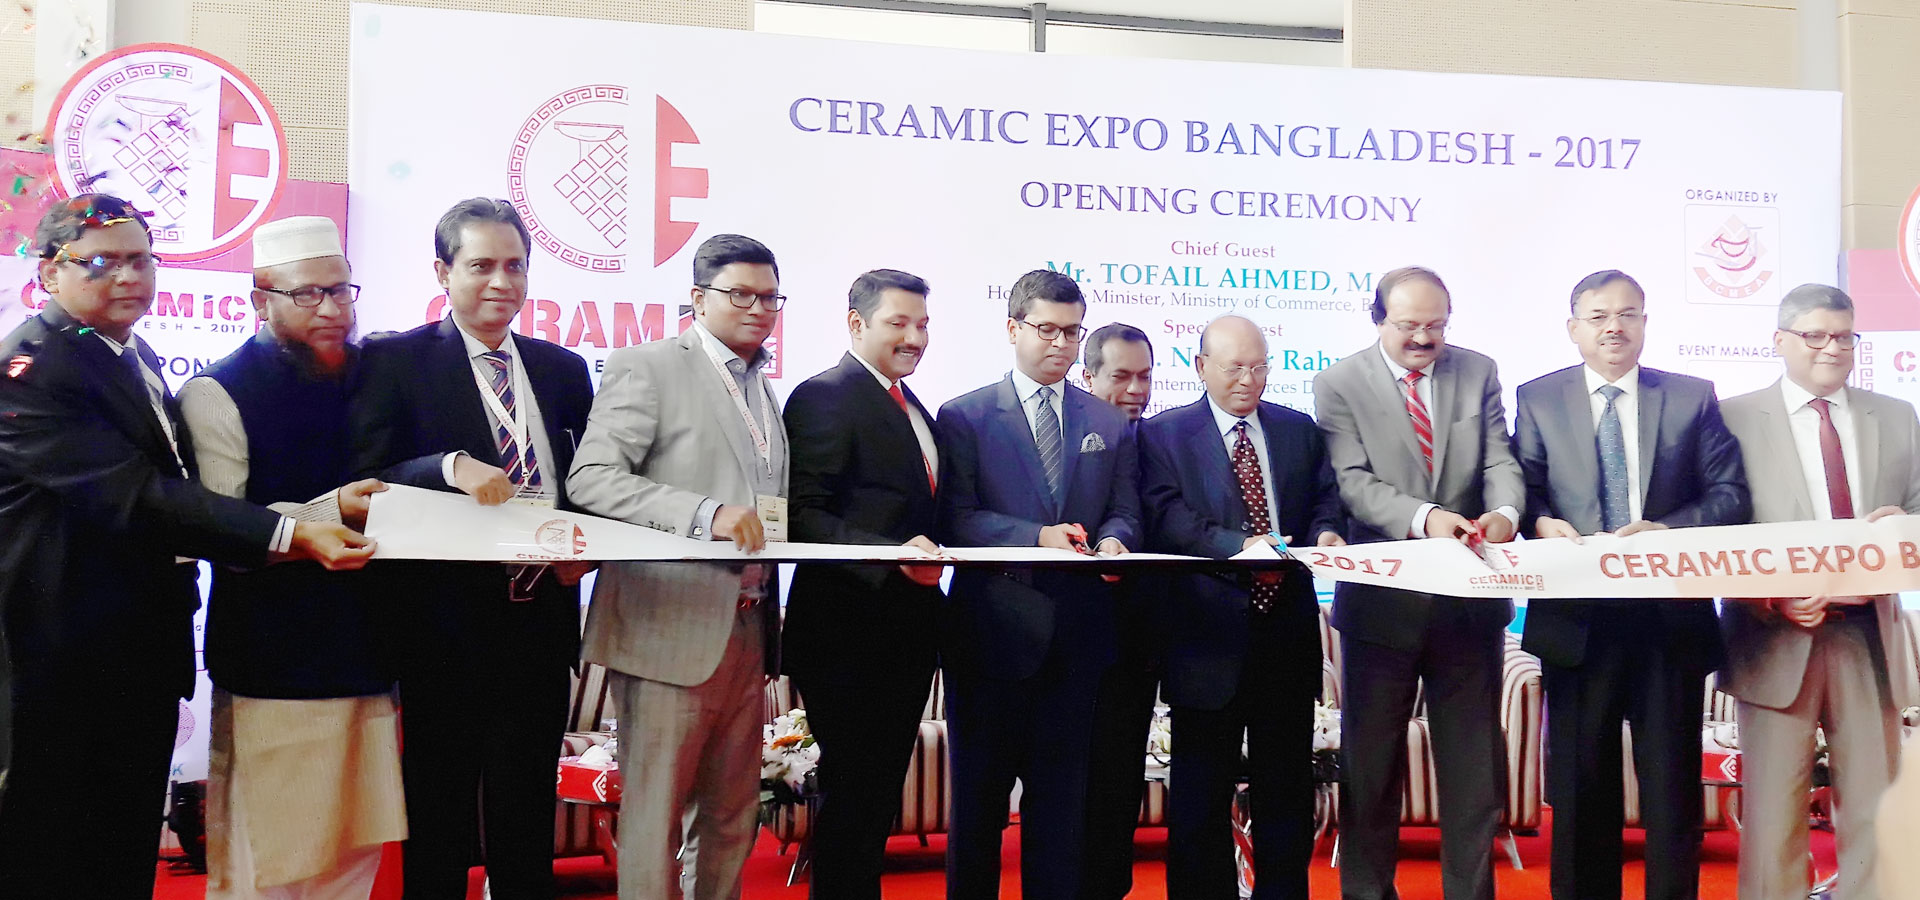 Ceramic Expo Bangladesh-2017-2